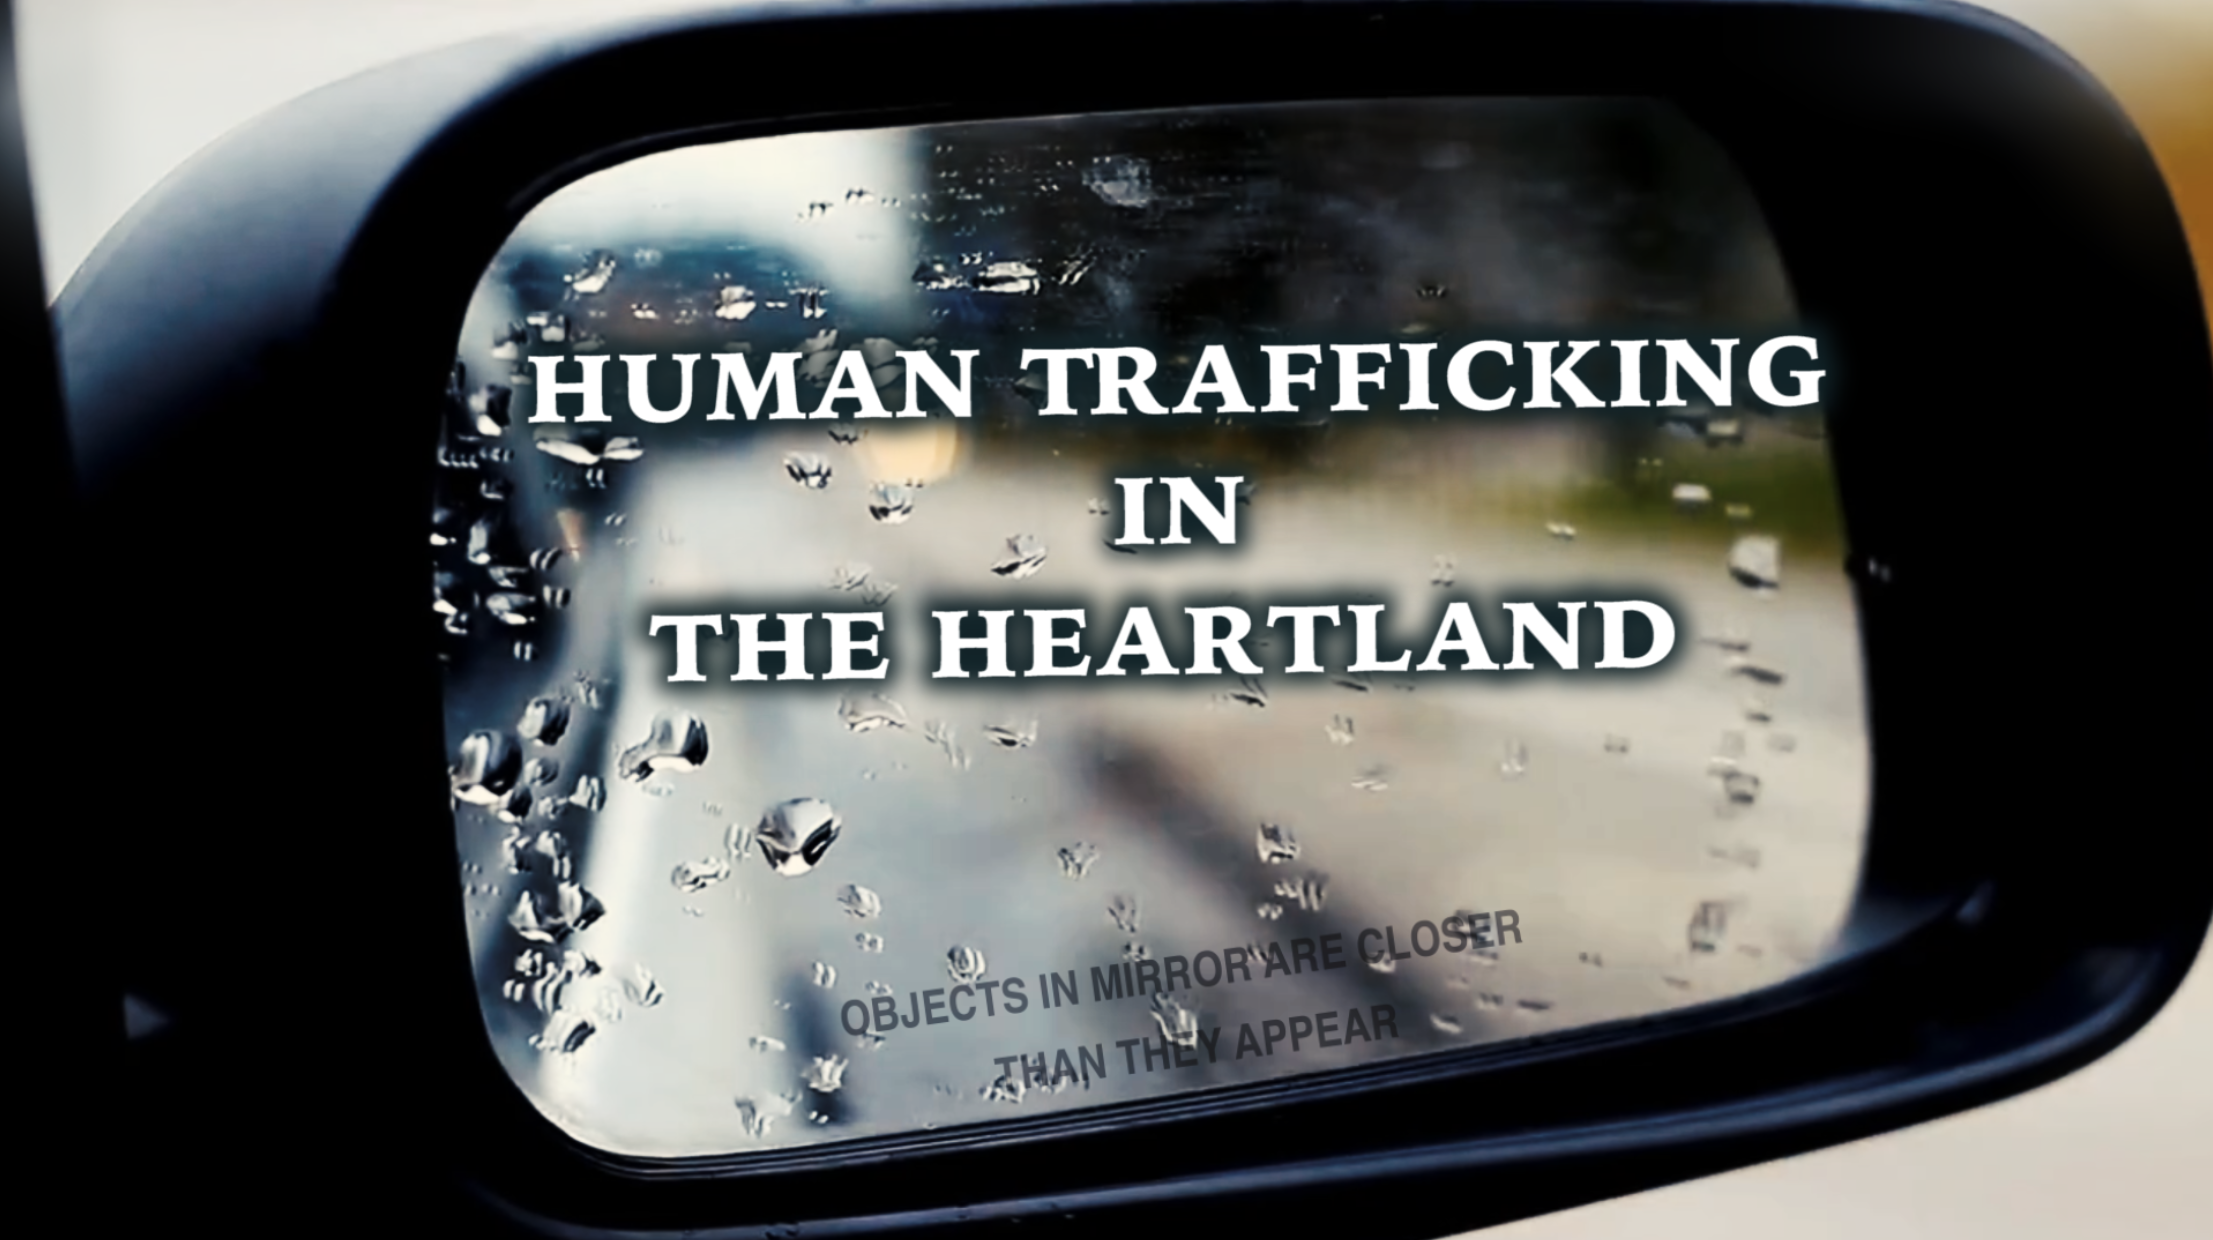 Human Trafficking in the Heartland is a documentary Mickle Communications made. Check it out!